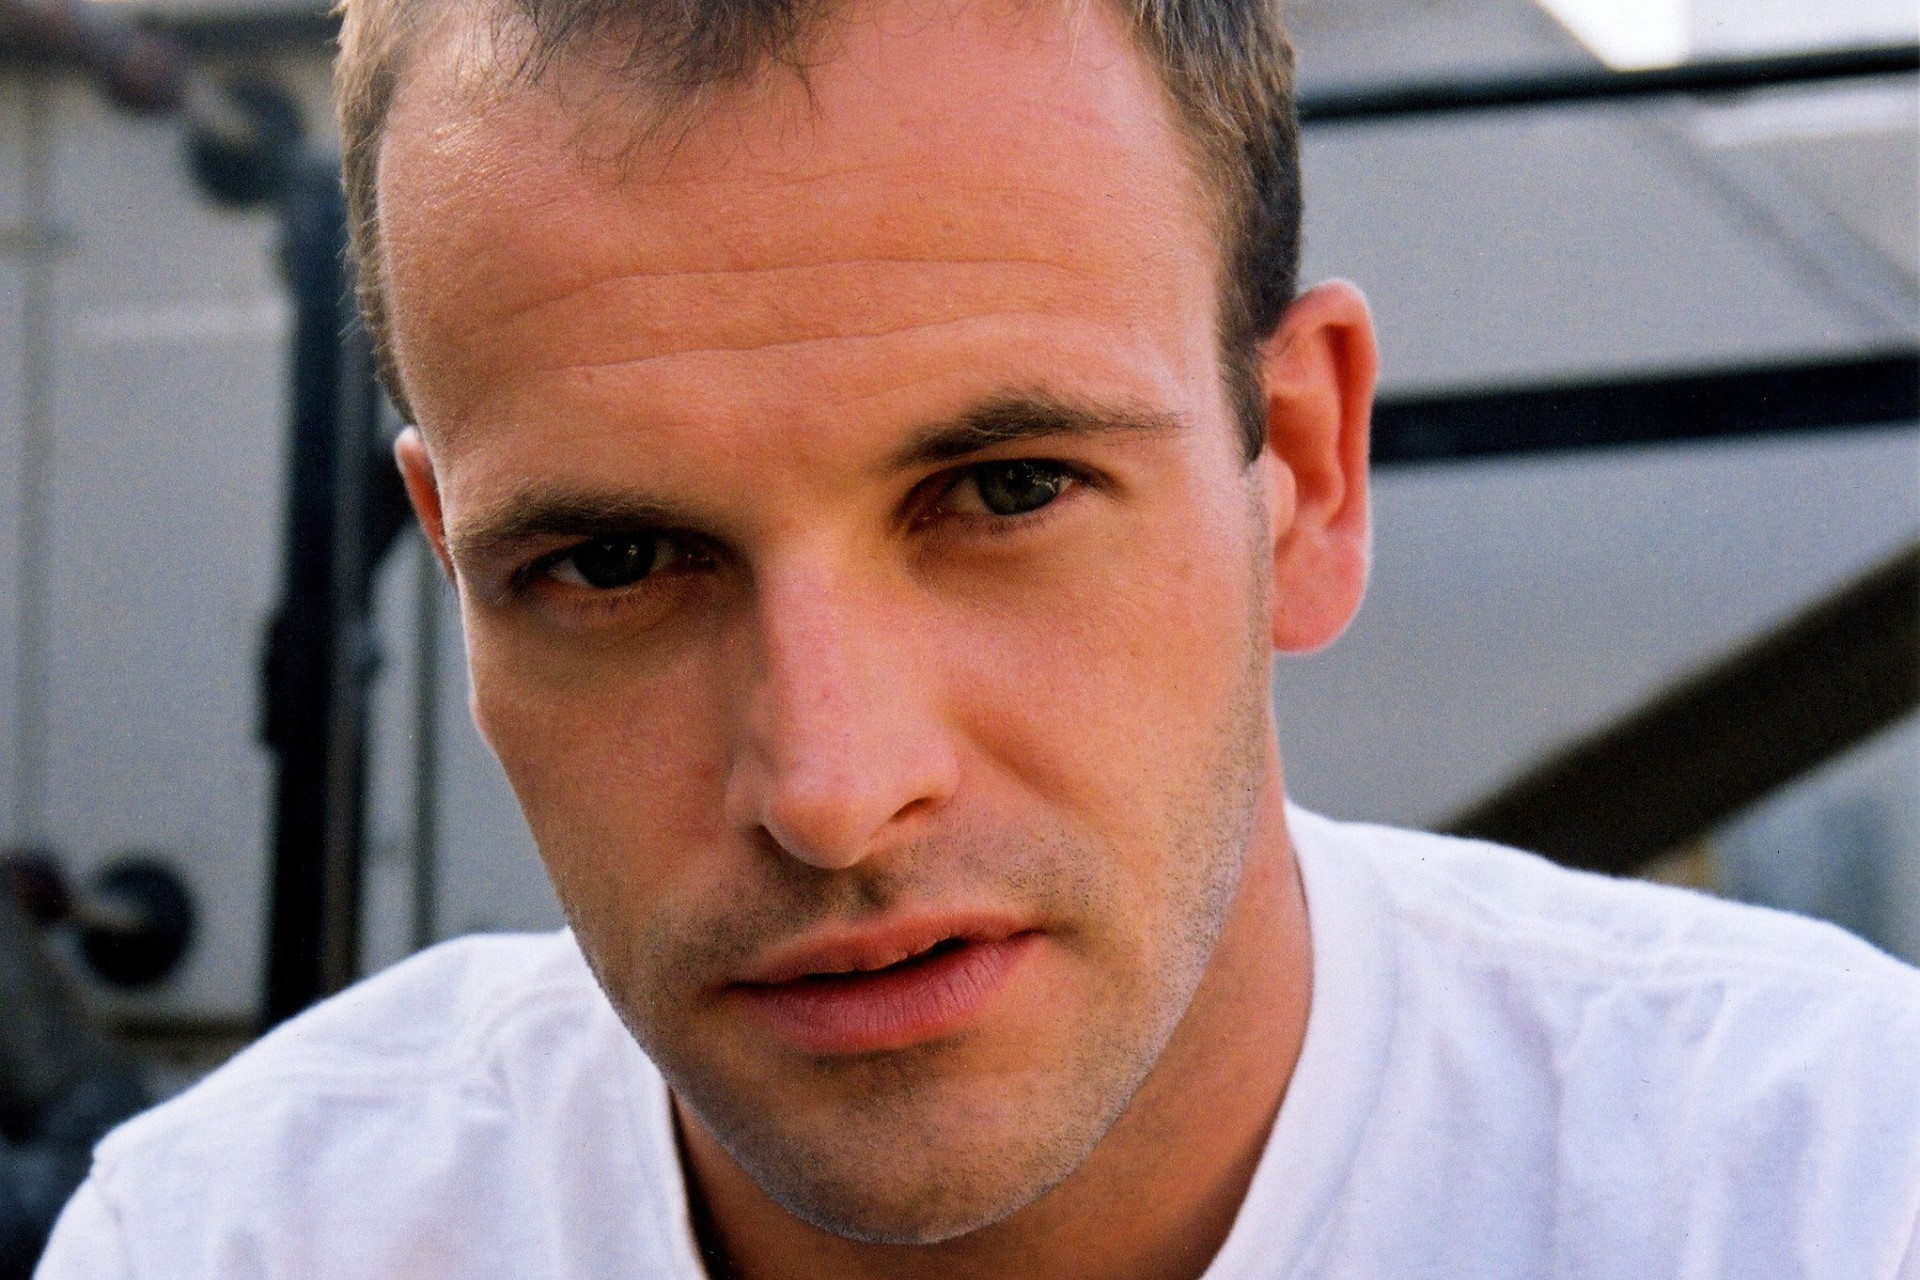 Jonny Lee Miller gets big role in 'The Crown' and reconnects with ex-wife Angelina Jolie